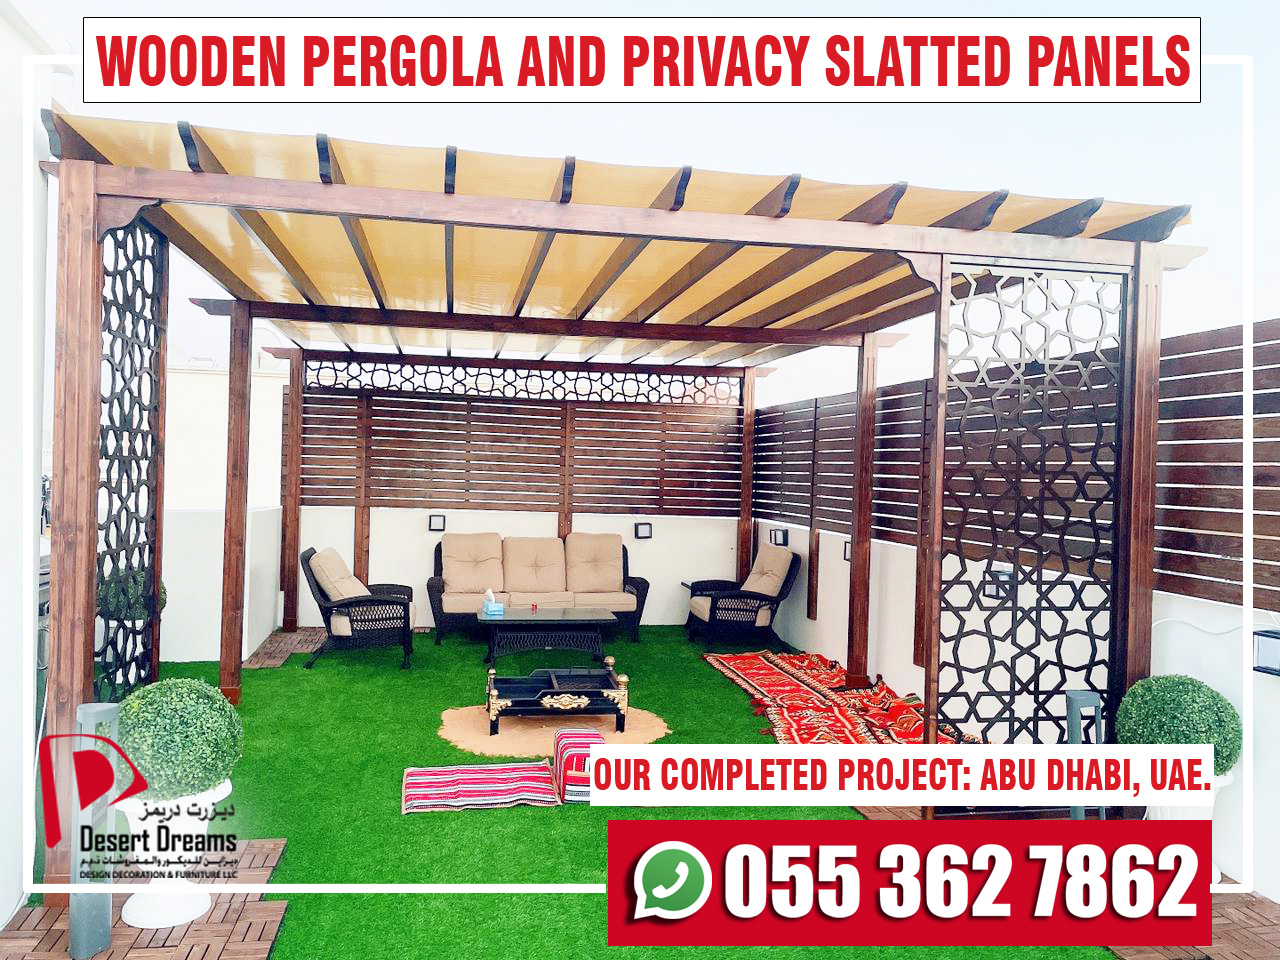 Wooden Pergola and Privacy Slatted Fences in UAE-4.jpg